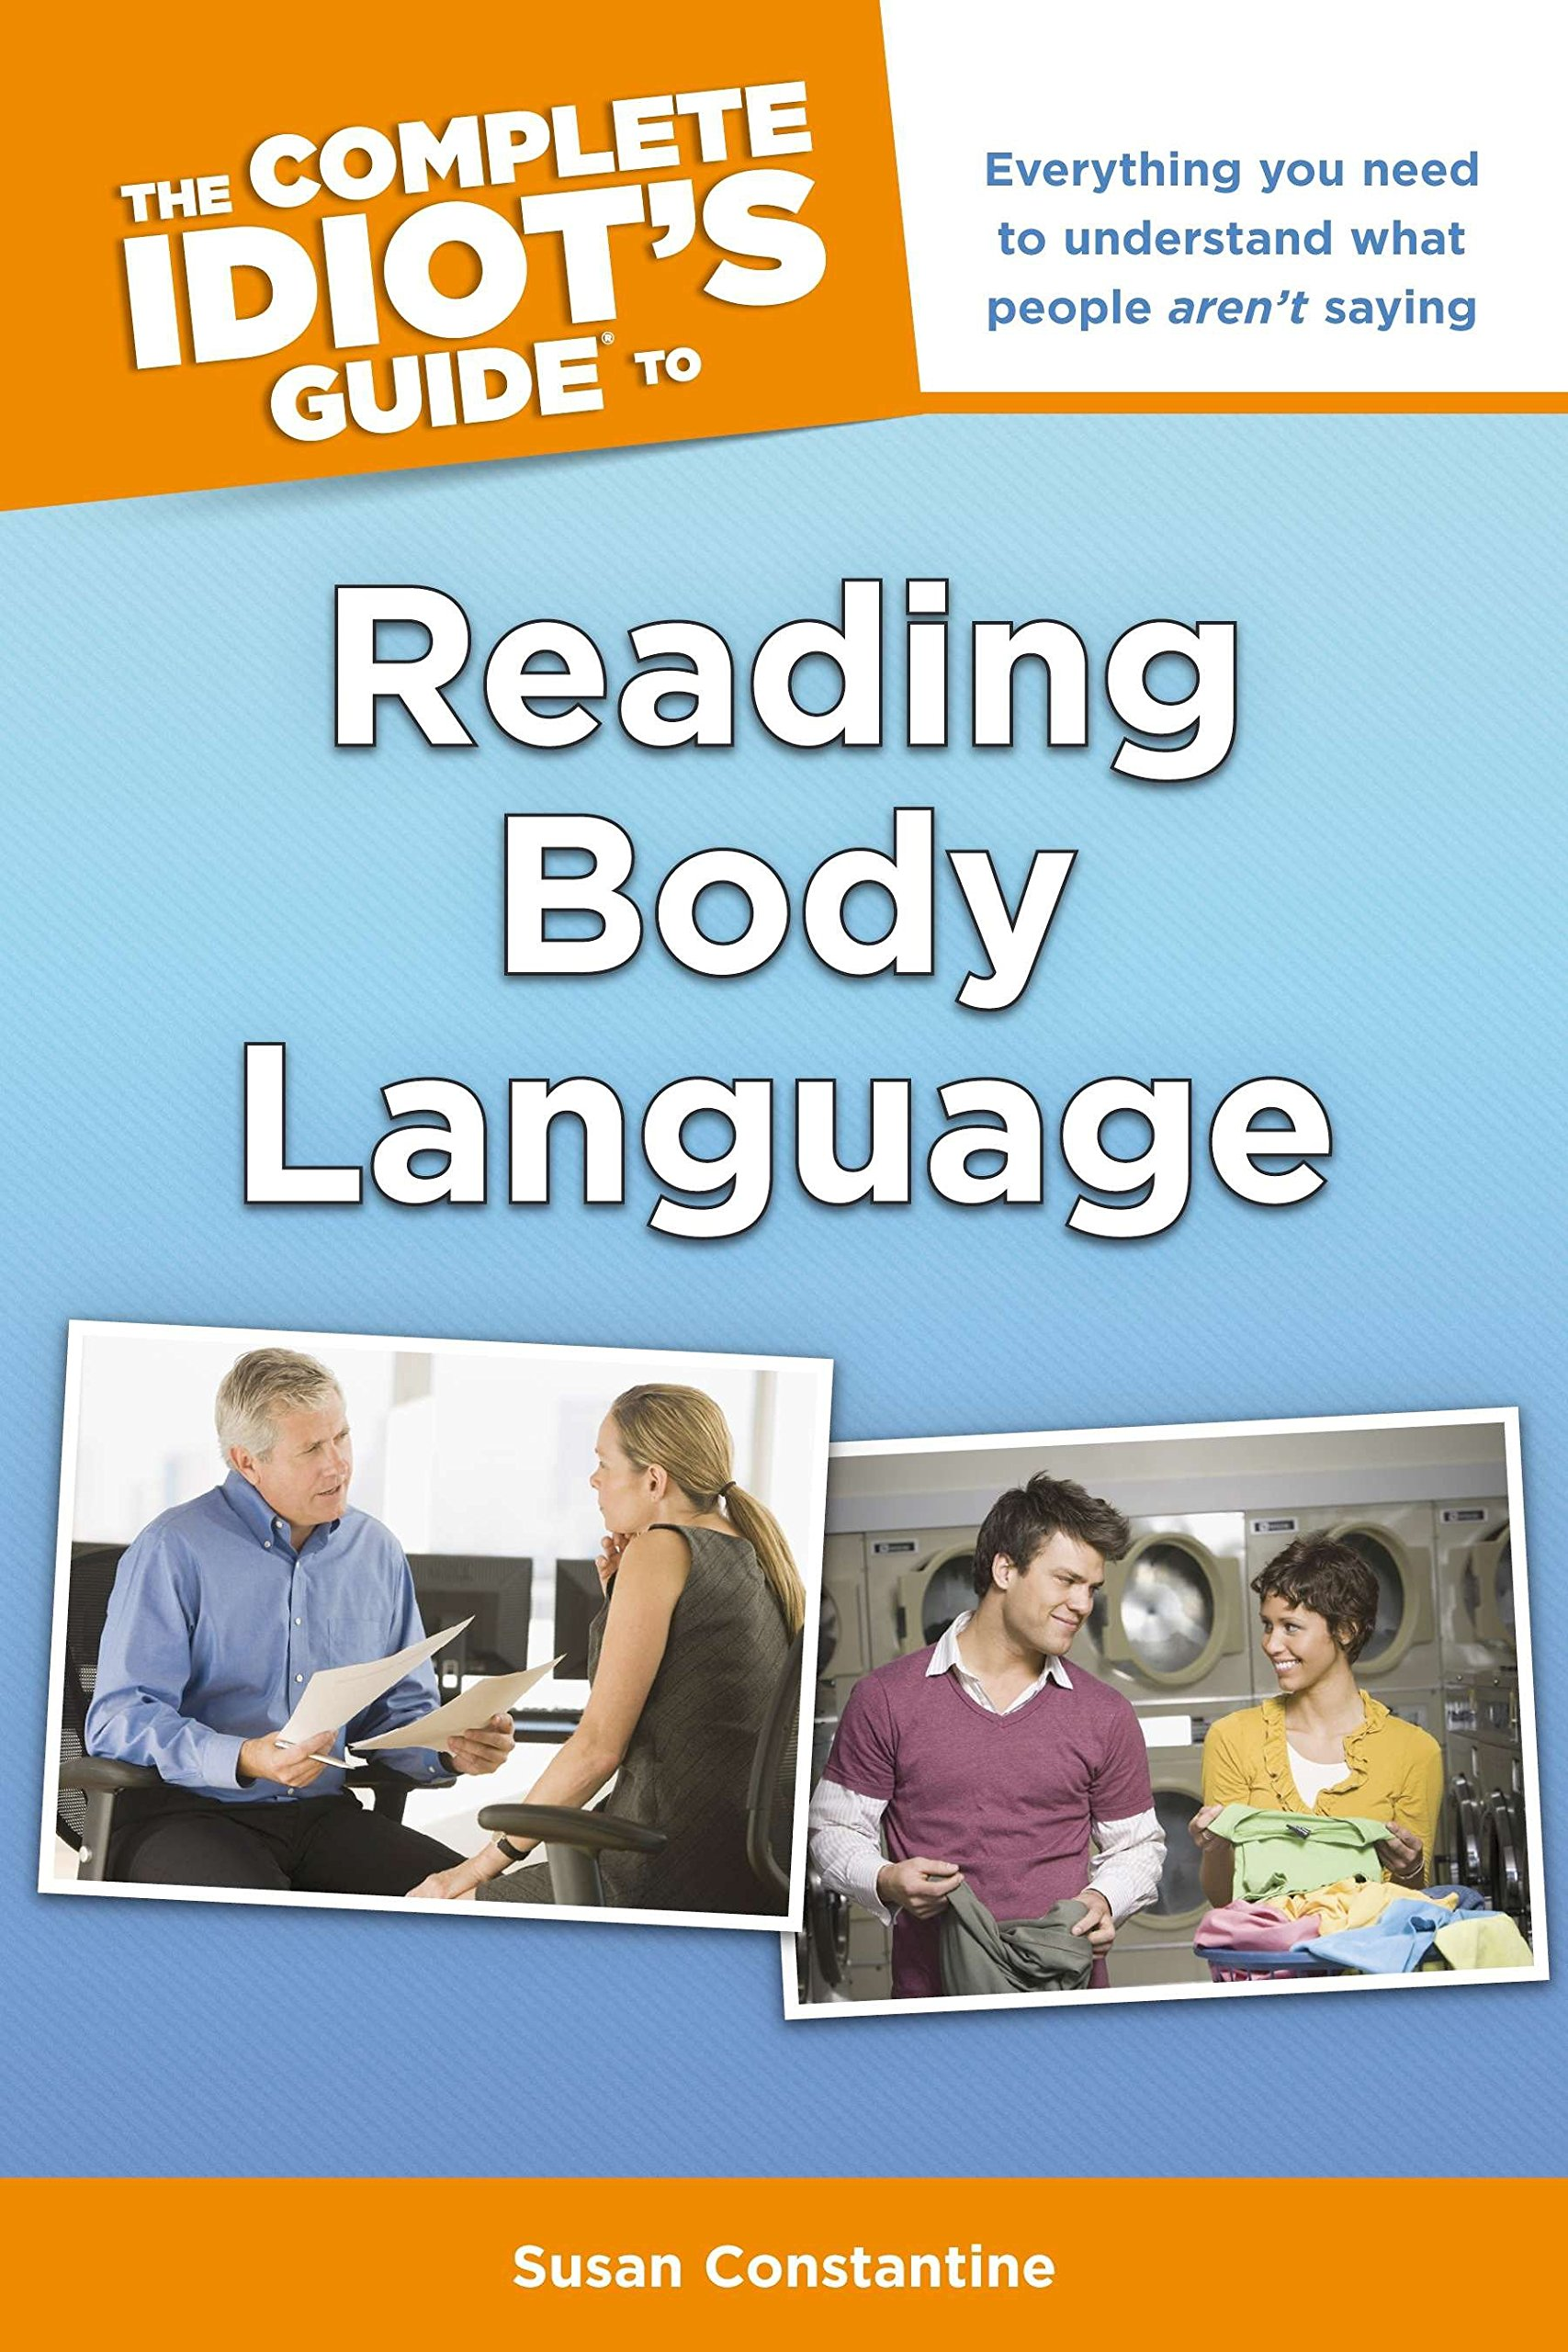 The Complete Idiot's Guide to Reading Body Language